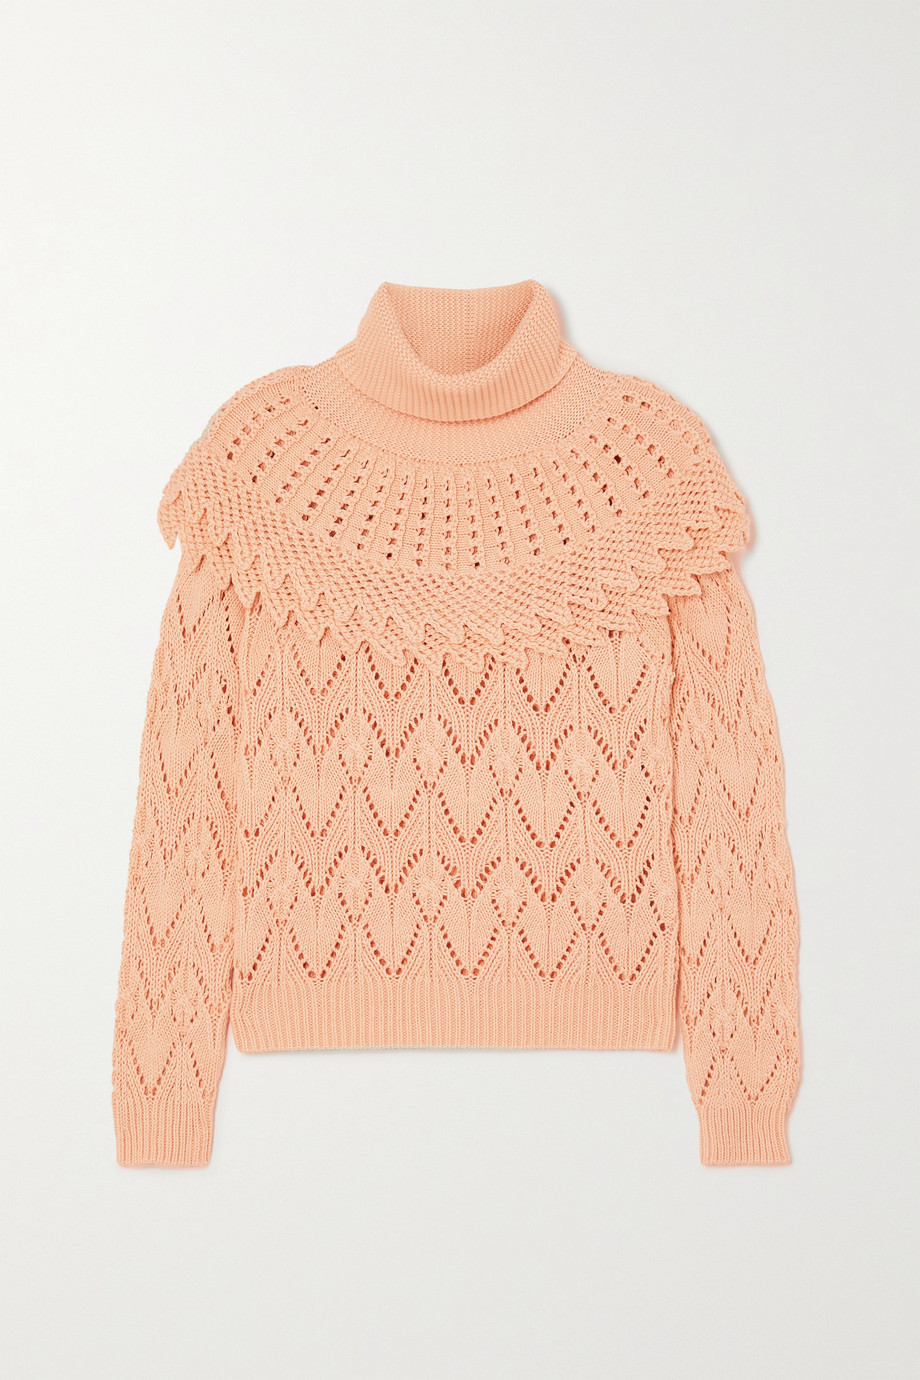 Zimmermann Ladybeetle pointelle-knit cotton and linen-blend turtleneck sweater